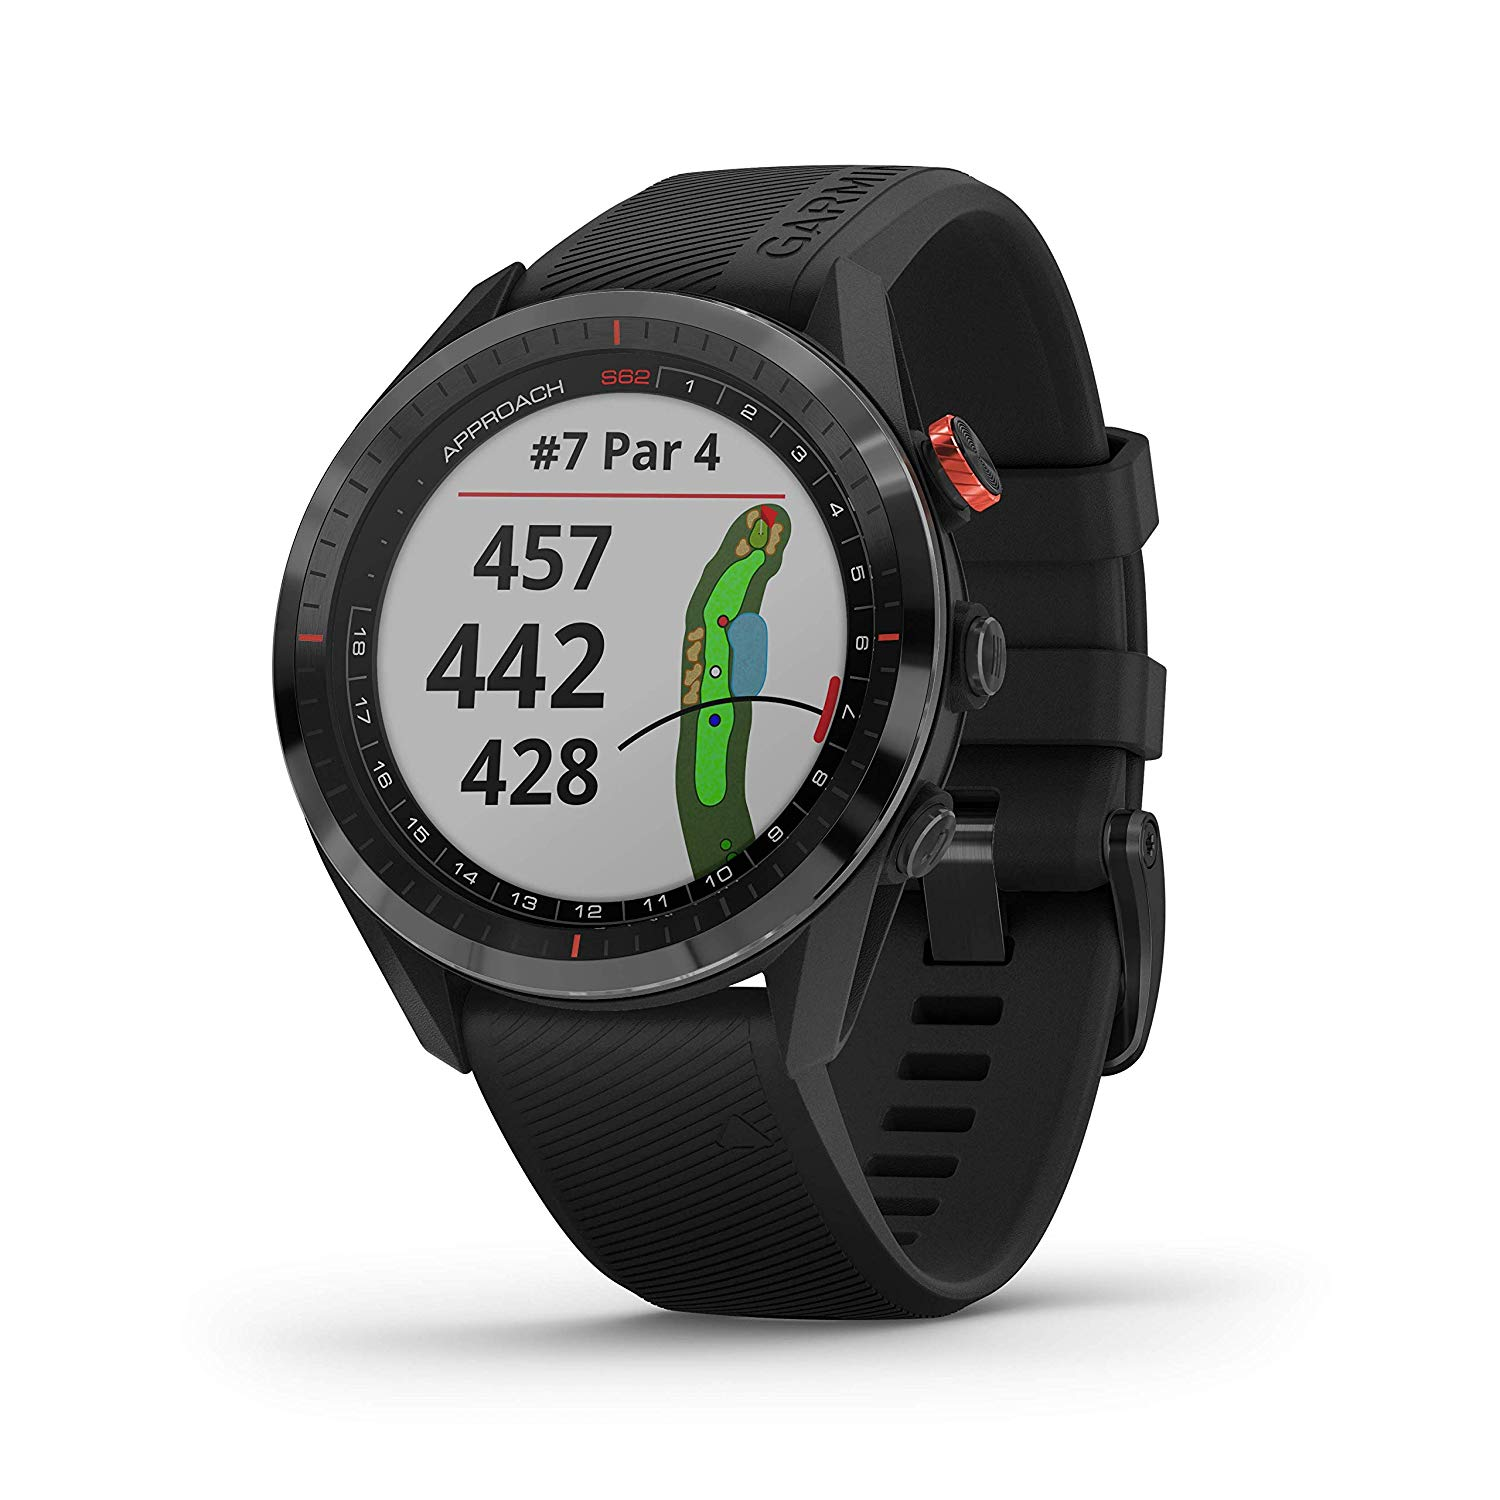 Đồng hồ Garmin Approach S62 Premium with CT10 Bundle, Golf GPS